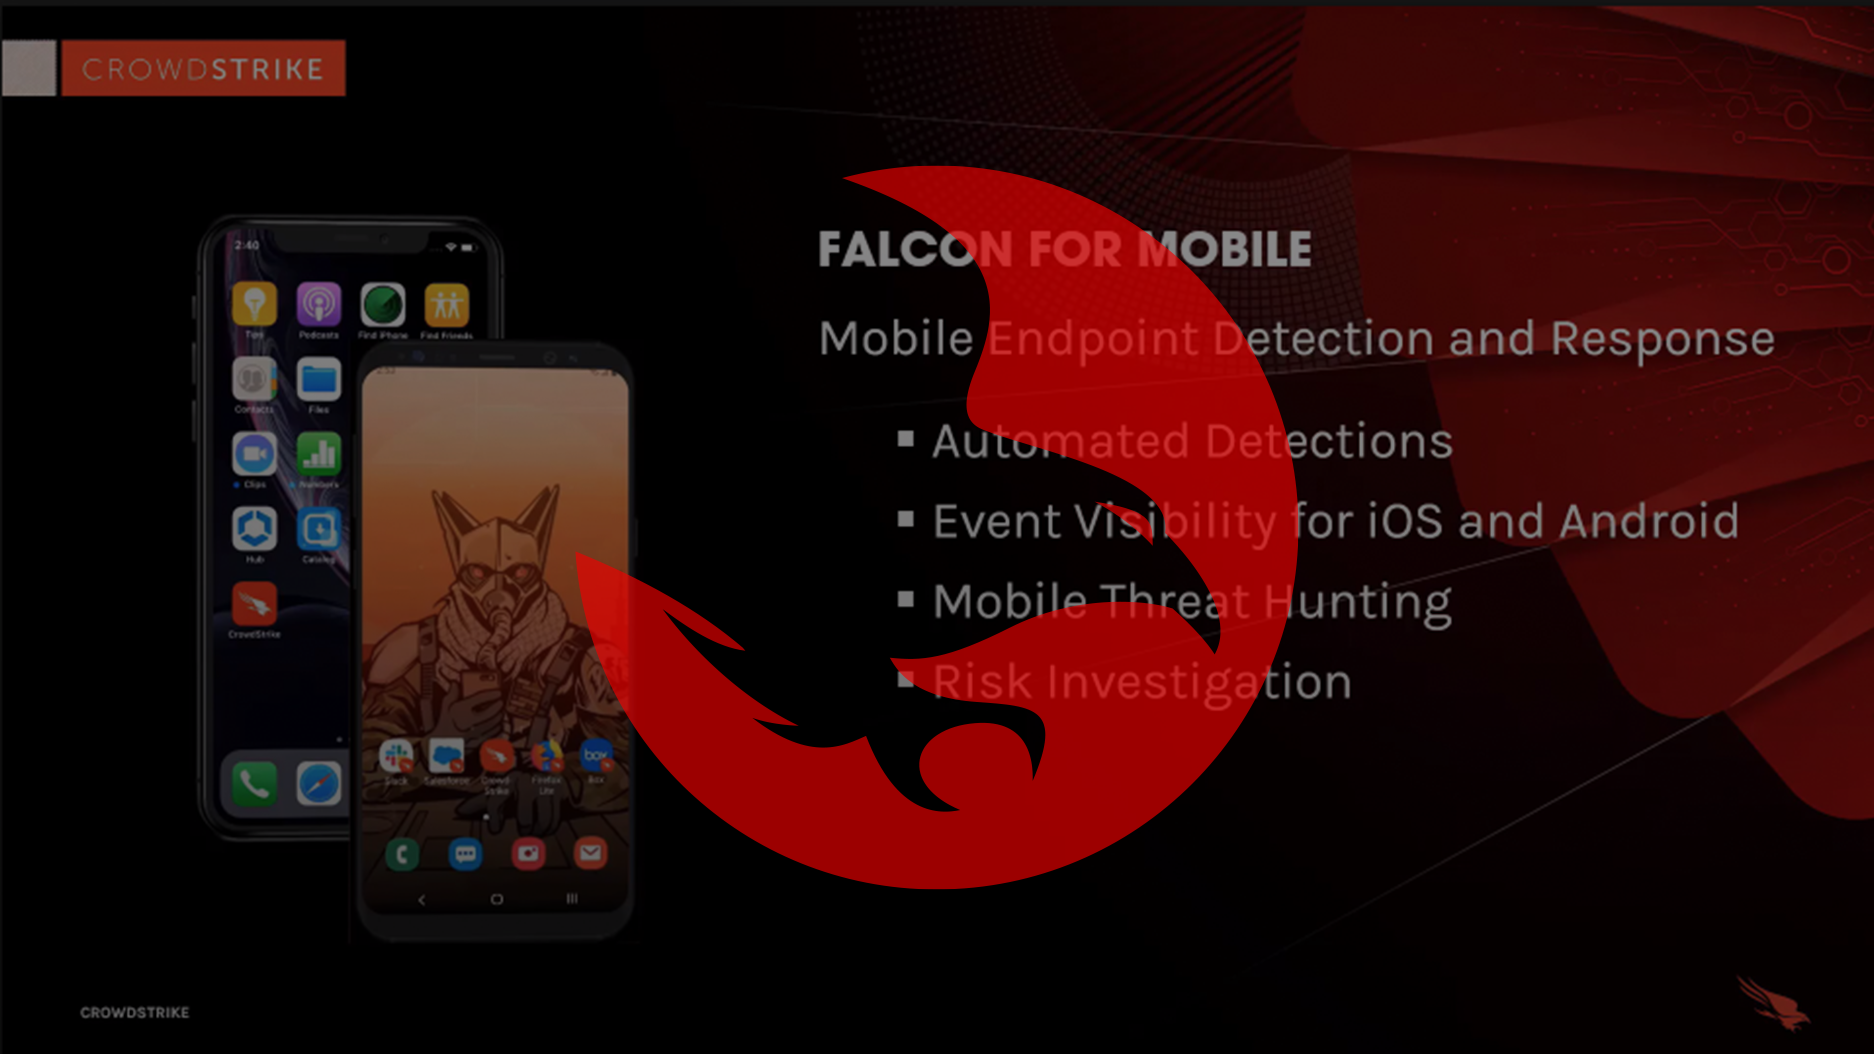 Falcon for Mobile